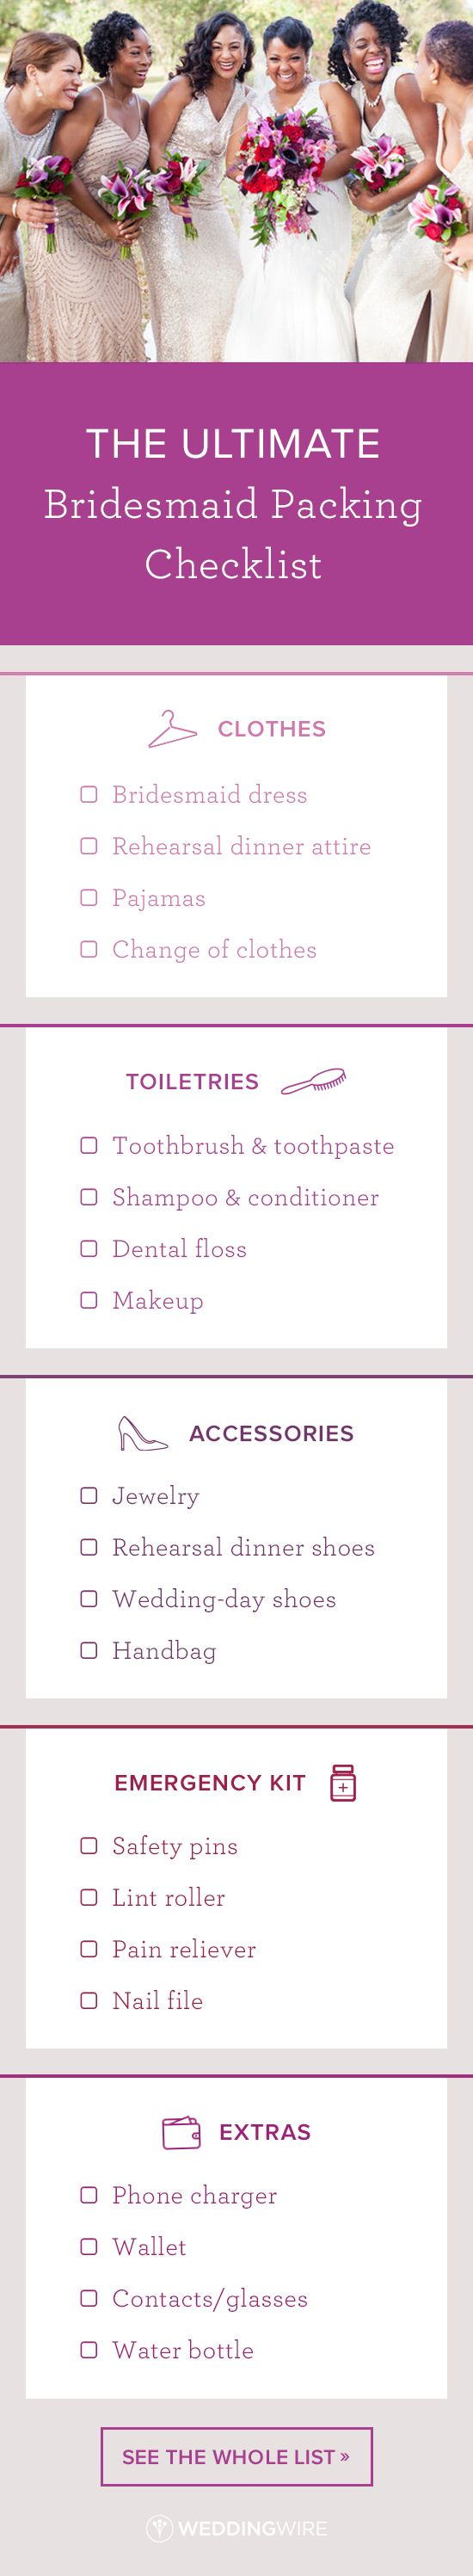 The Ultimate Bridesmaid Packing Checklist - In an upcoming wedding? Find out what wedding weekend essentials you should pack on @weddingwire! {Angie McPherson Photography}